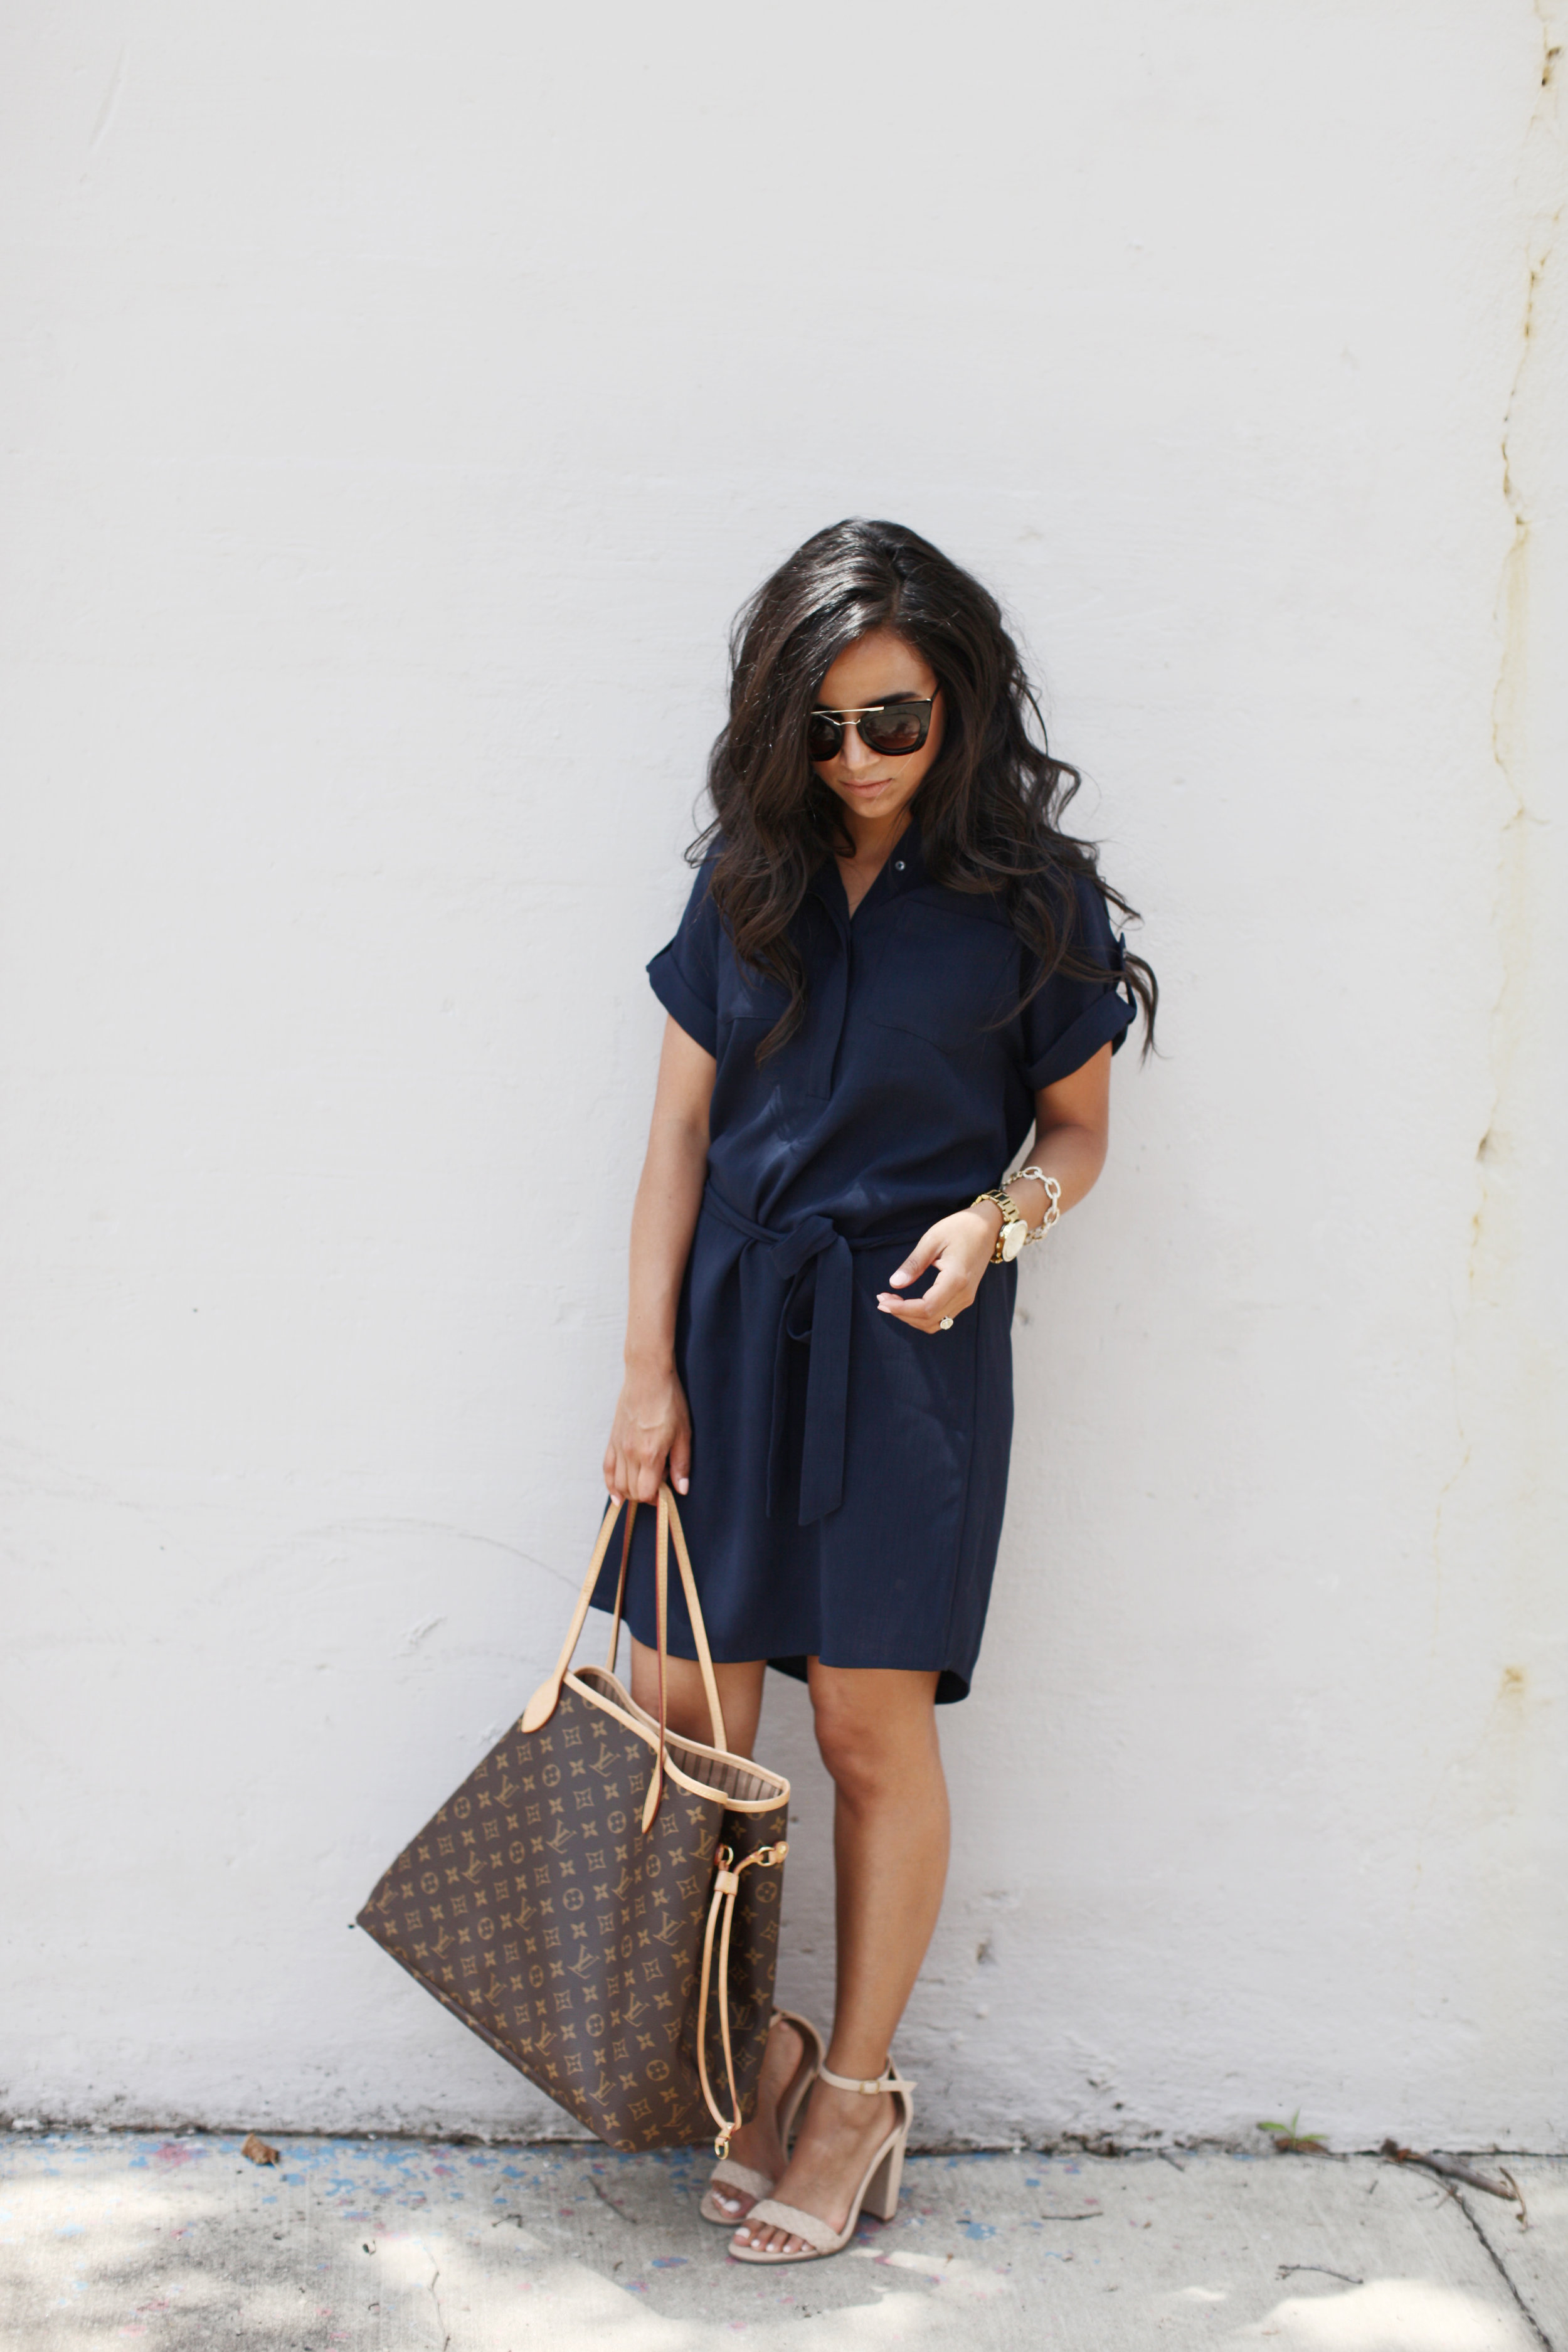 FRIDAYS AT WORK...THERE IS SOMETHING ABOUT FRIDAYS THAT JUST MAKES ME WANT TO DRESS DOWN. WHETHER IT'S THROWING ON A PAIR OF JEANS WITH A BUTTON UP AND NUDE PUMPS OR A FUN SHIRT DRESS LIKE THIS ONE! -